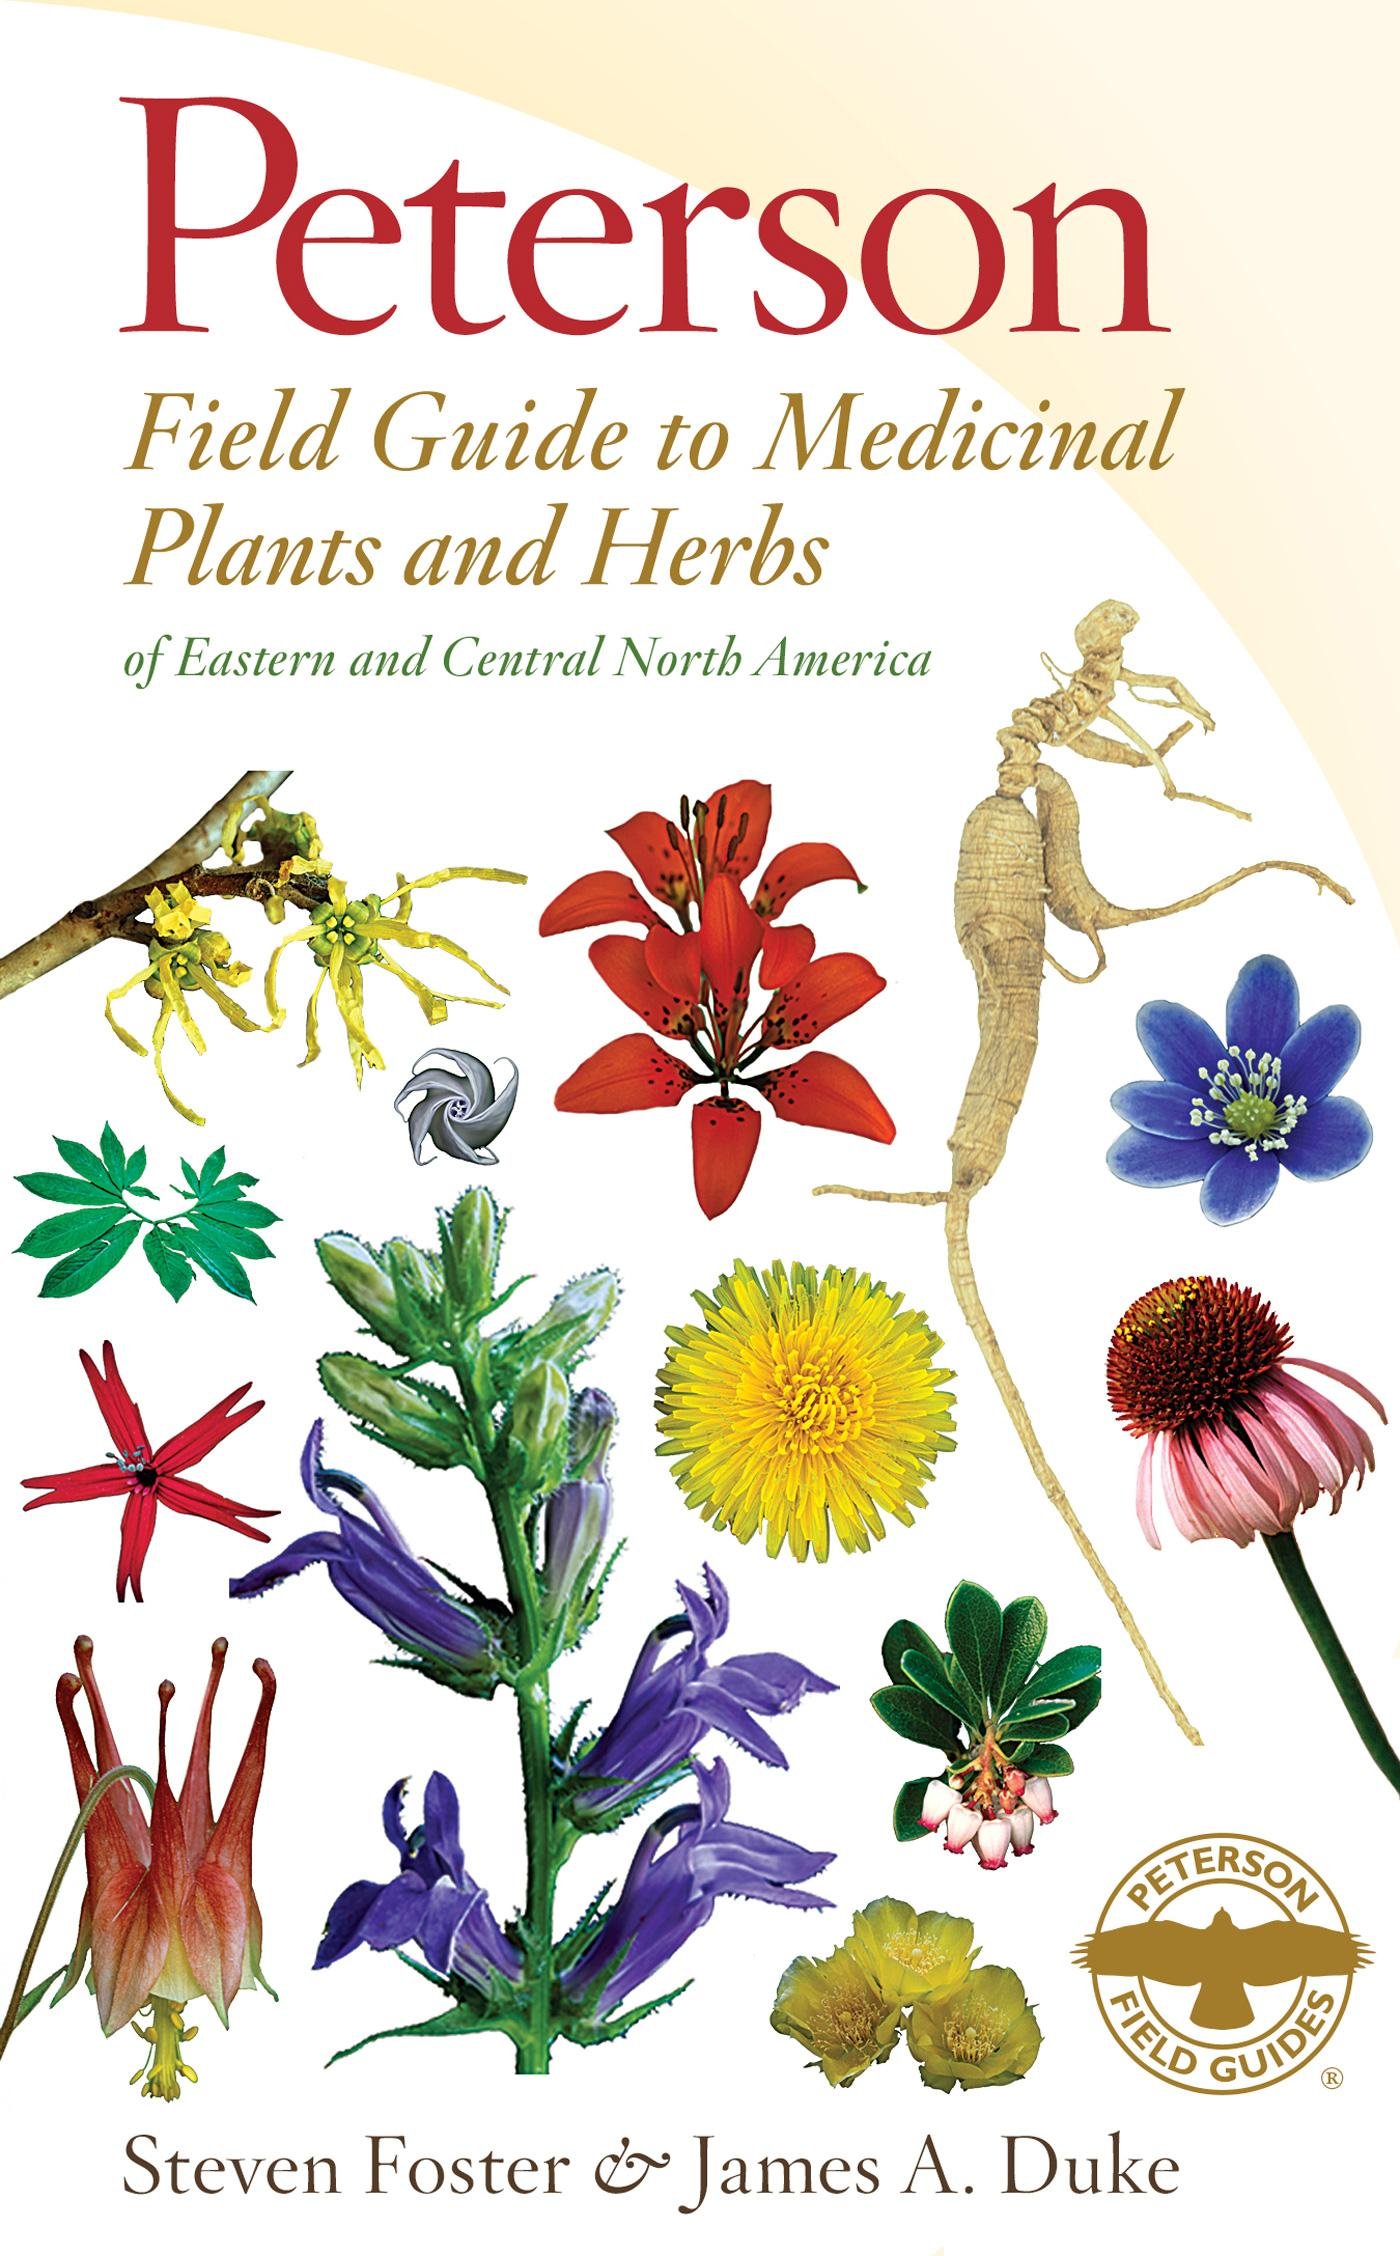 Peterson Field Guide To Medicinal Plants And Herbs Of Eastern Central North America Third Edition